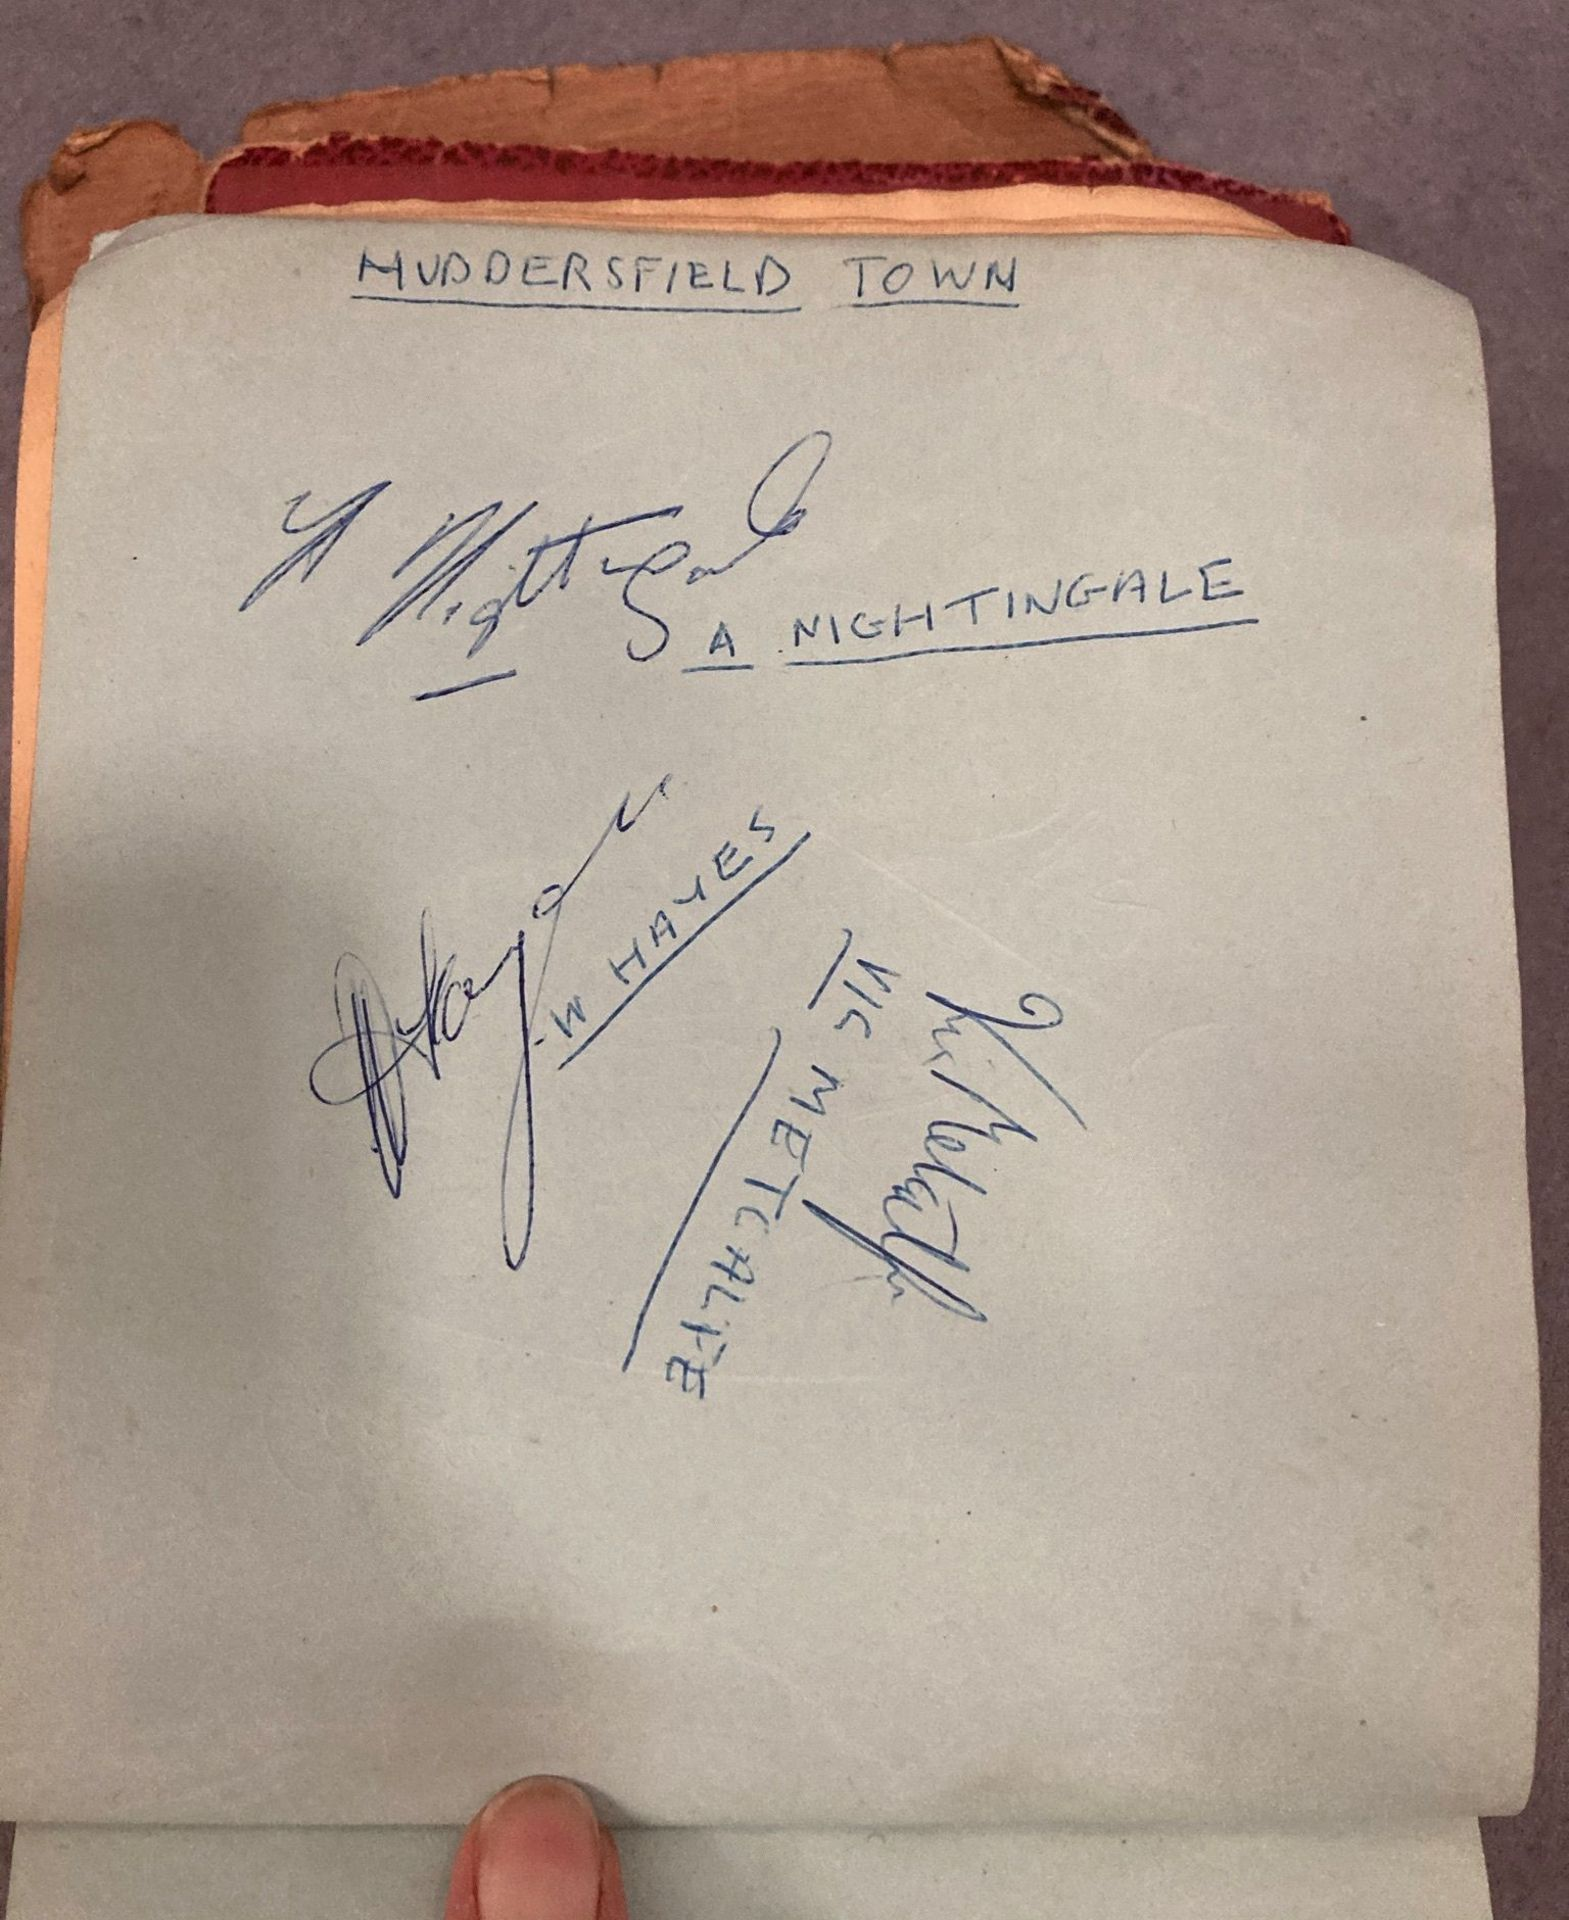 An autograph book, badly distressed, - Image 4 of 5